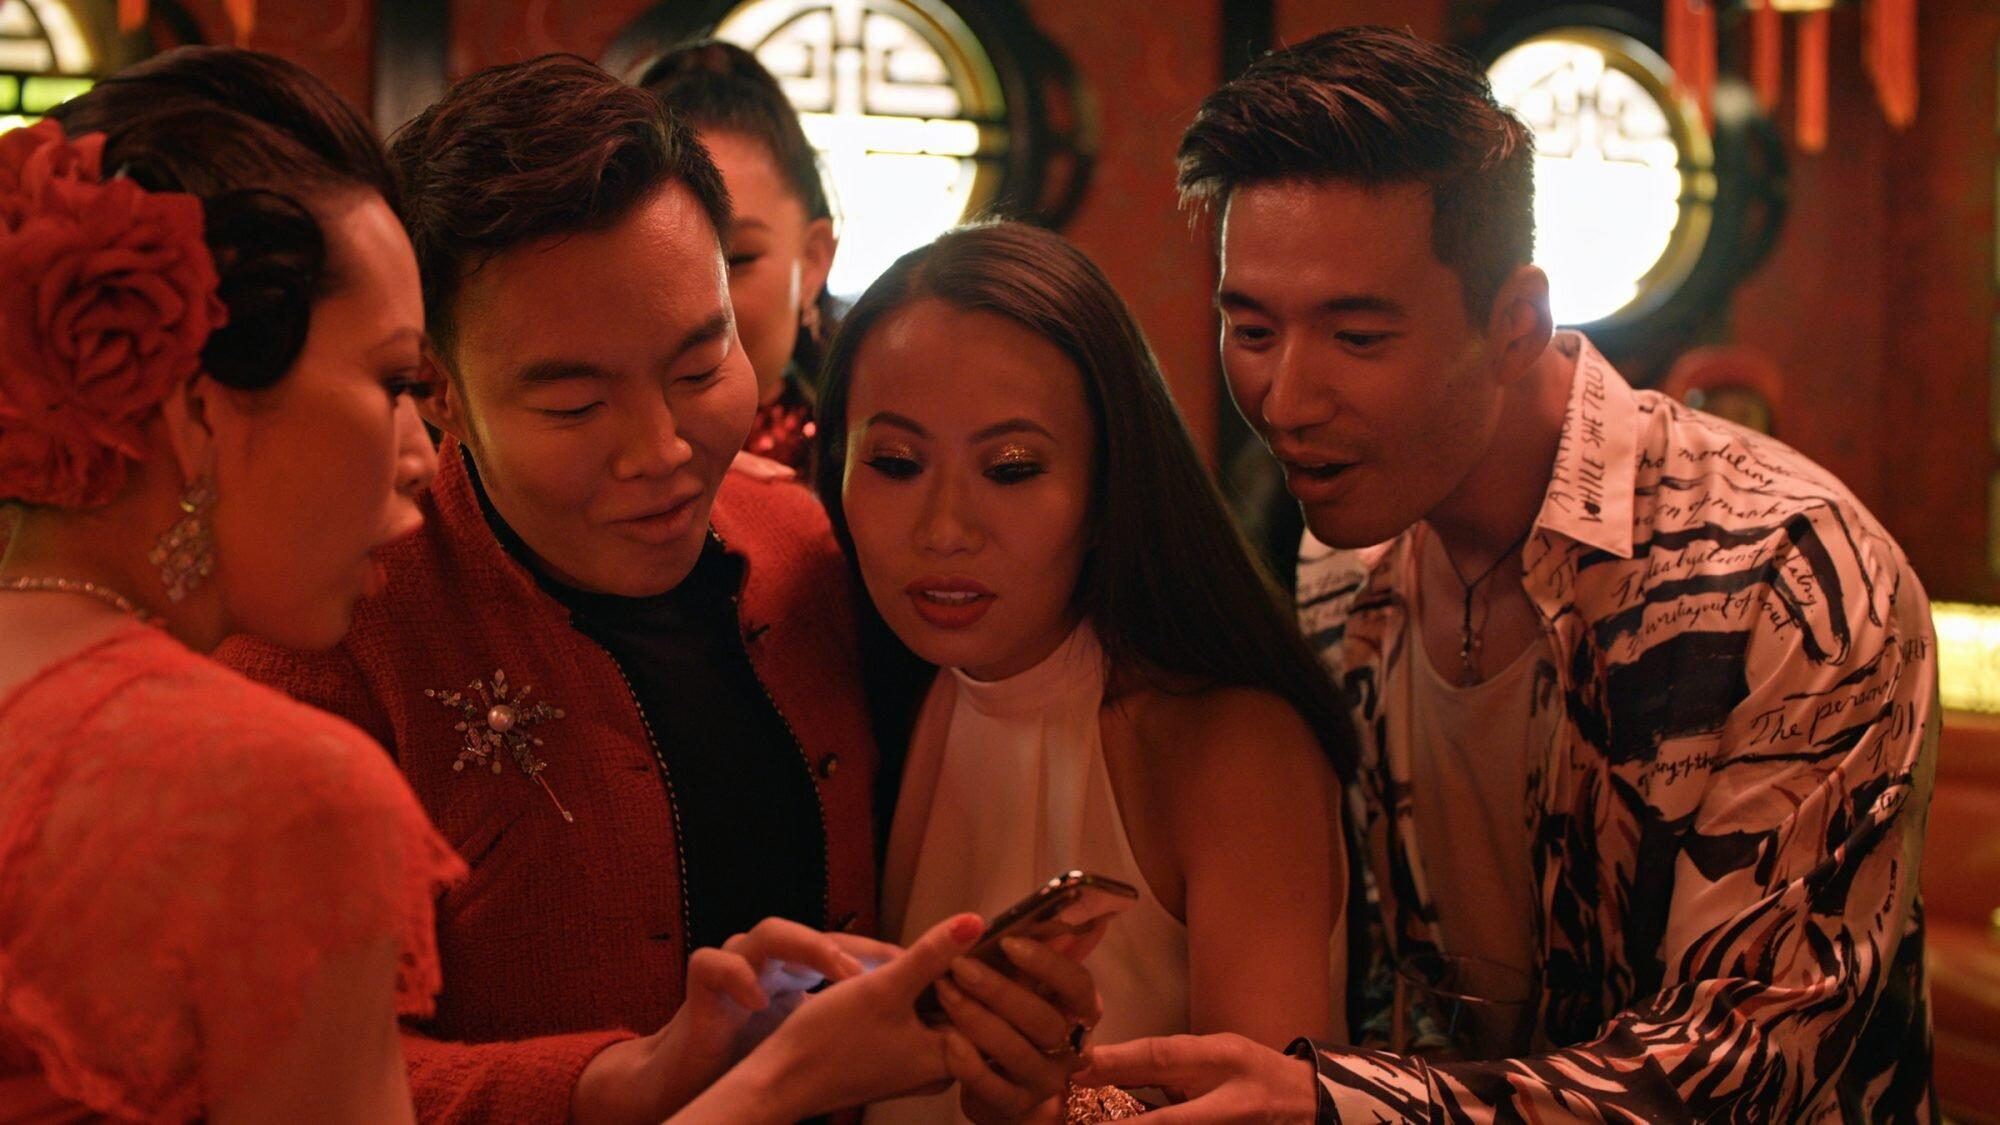 www.yahoo.com: Bling Empire 's Kelly Mi Li Says She's 'Proud' to Be Part of an Asian-Led Reality Show